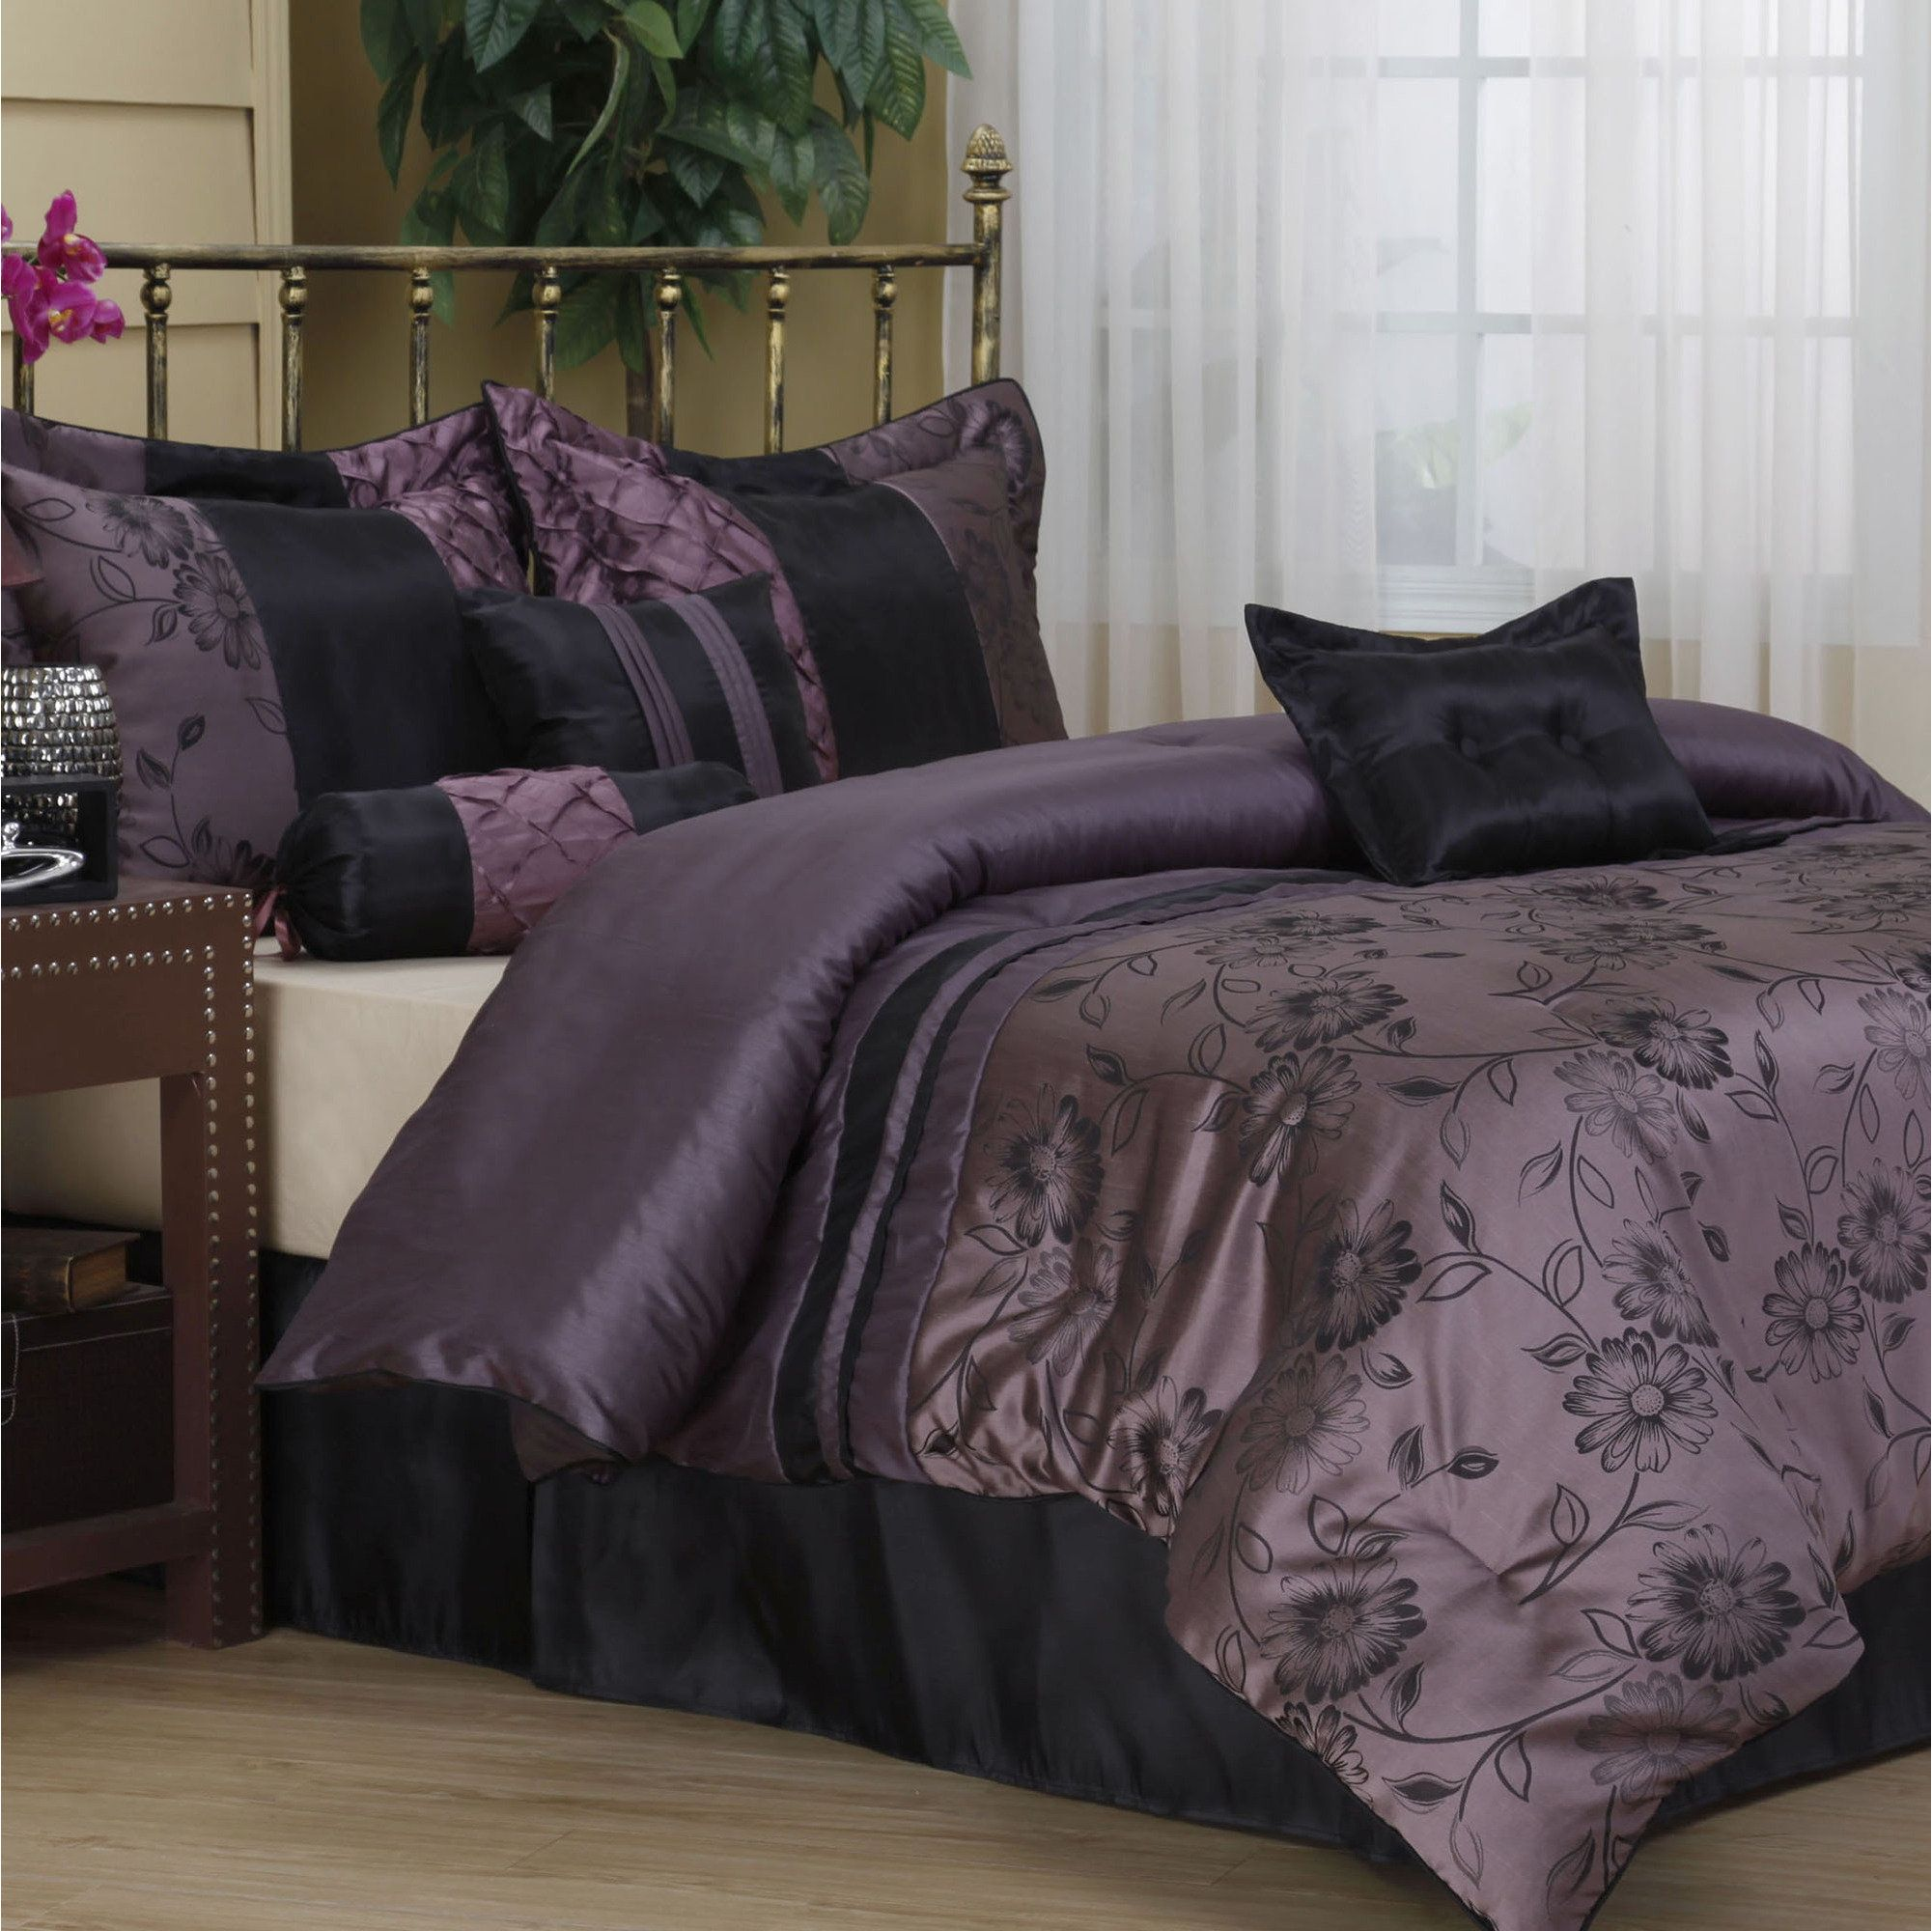 purple elegant ideas qu deep comforter for queen light flower sets bedroom decoration size set full king